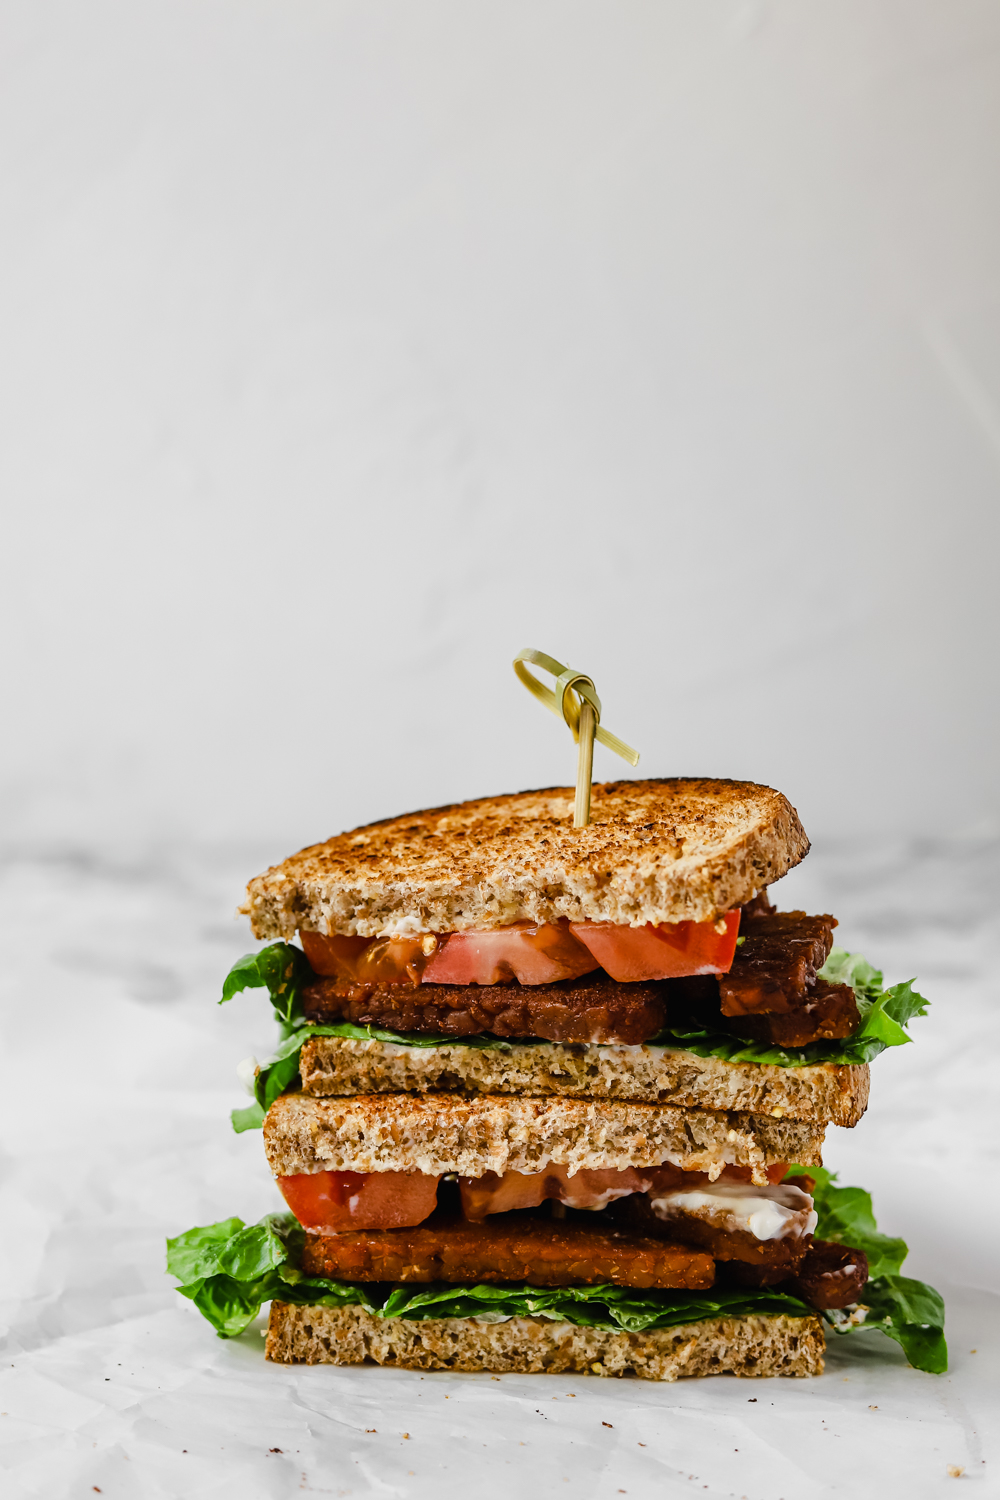 Vegan BLT sandwich cut in half and stacked.